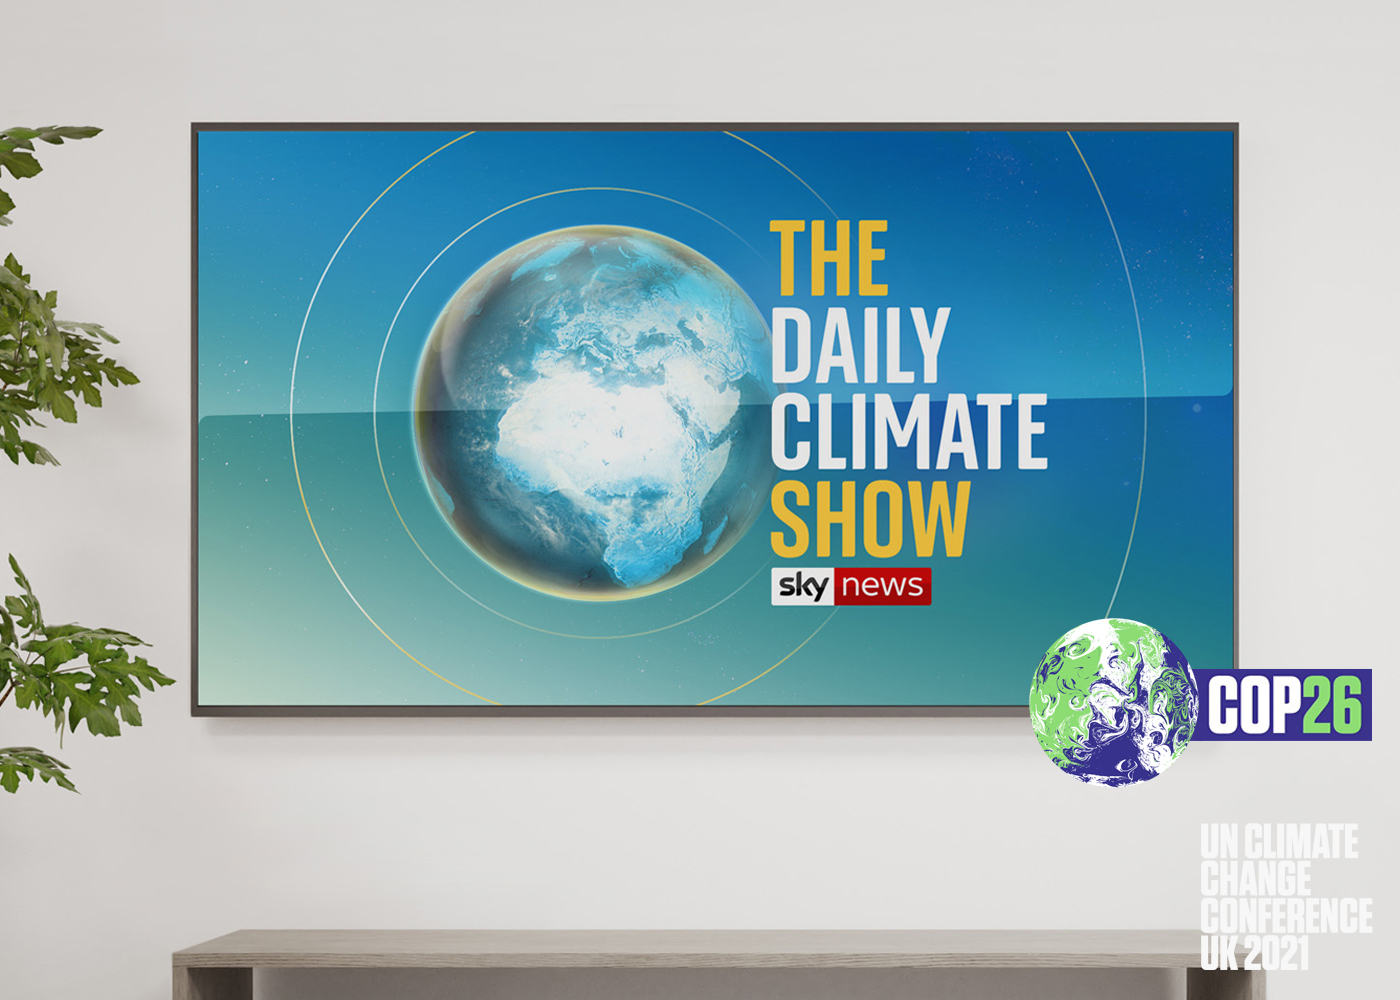 Sky launches The Daily Climate Show to highlight COP26